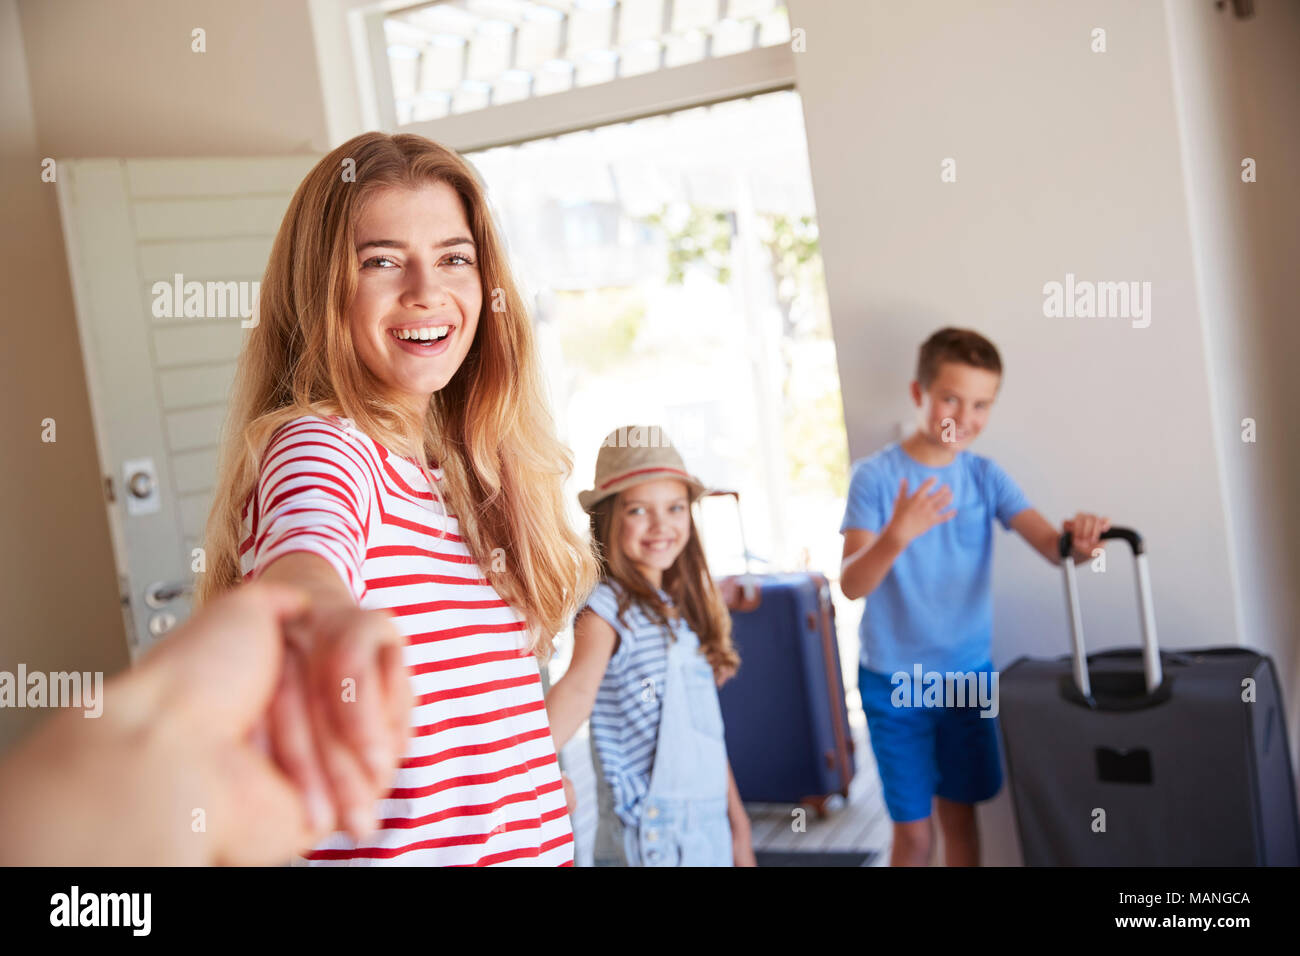 POV Shot Of Family With Luggage Leaving House For Vacation - Stock Image